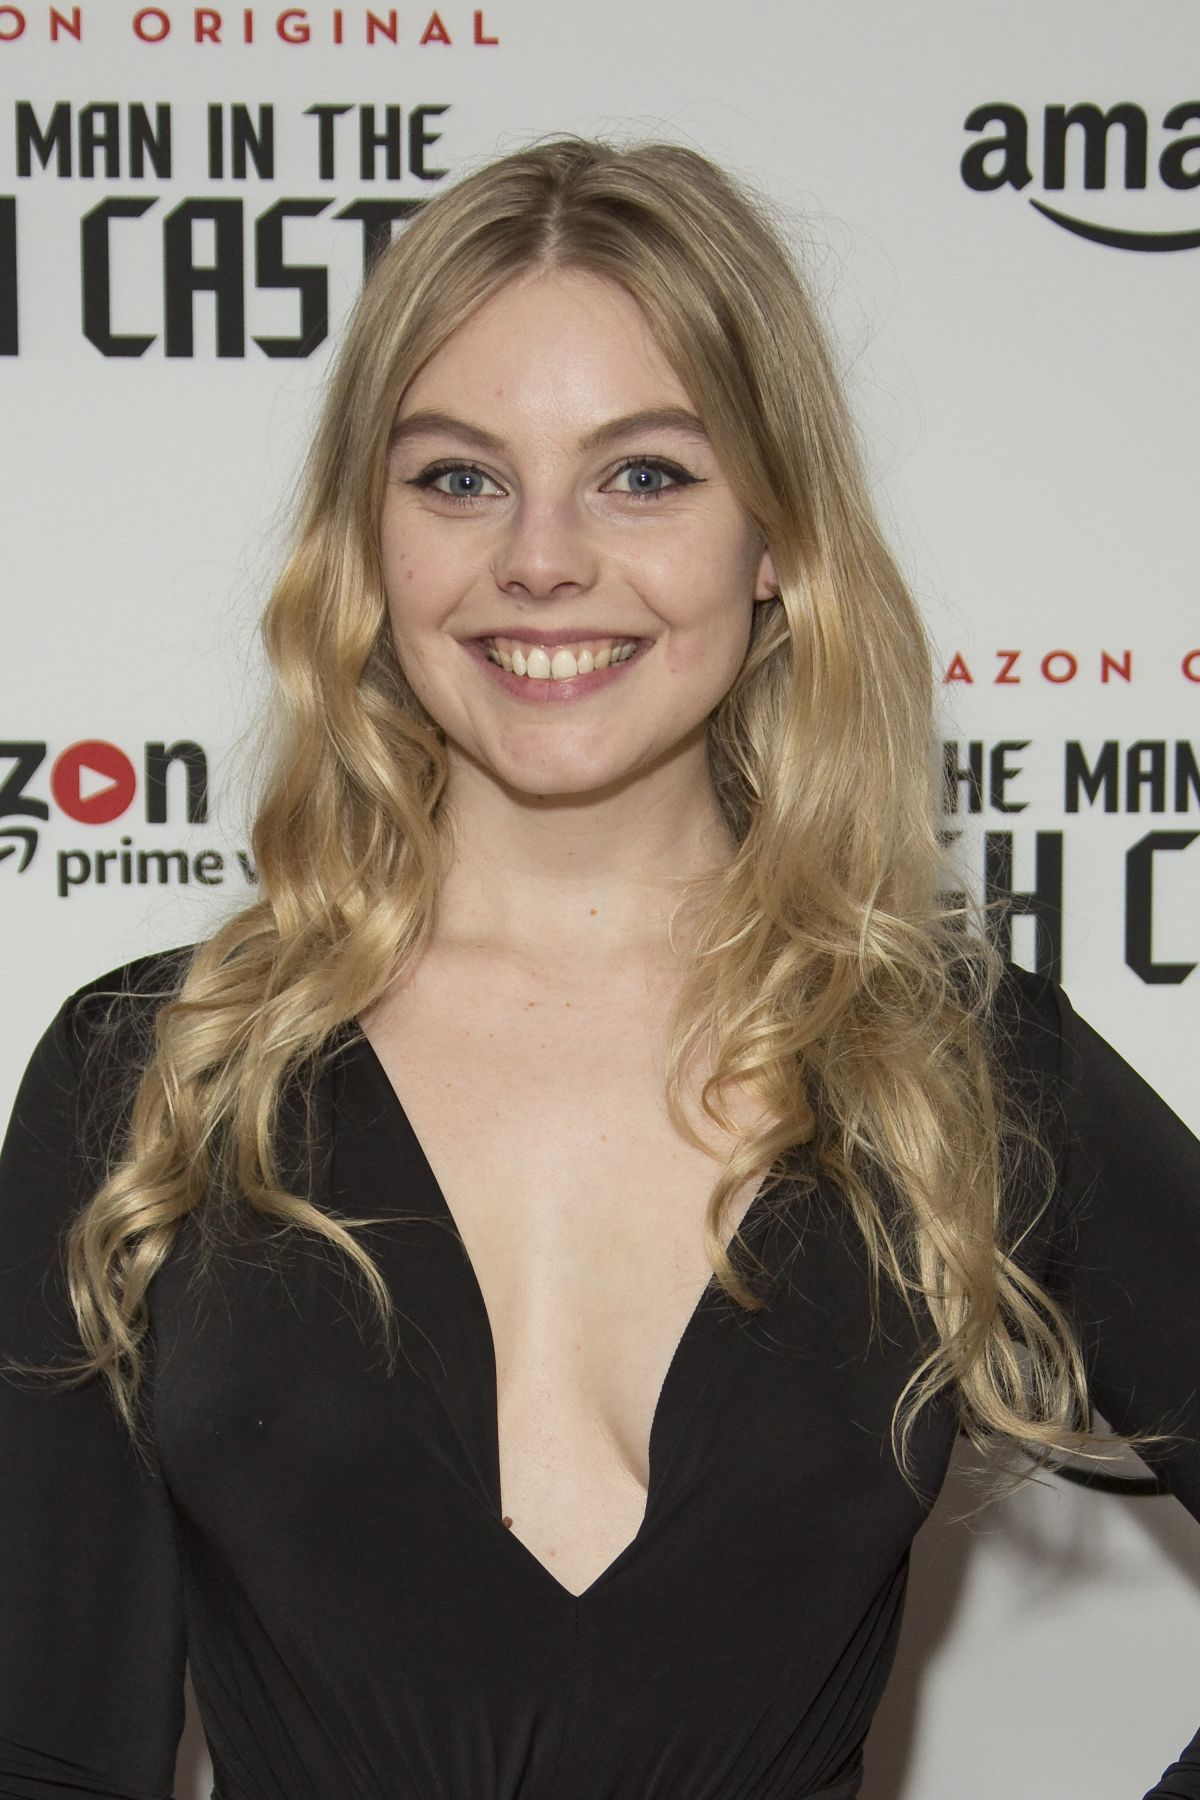 nell hudson measurementsnell hudson instagram, nell hudson twitter, nell hudson, nell hudson actress, nell hudson outlander, nell hudson singer, nell hudson tumblr, nell hudson call the midwife, nell hudson imdb, nell hudson and sam heughan, nell hudson wikipedia, nell hudson wiki, nell hudson hot, nell hudson interview, nell hudson measurements, nell hudson dating, nell hudson singing, nell'hudson facebook, nell hudson agent, laoghaire nell'hudson